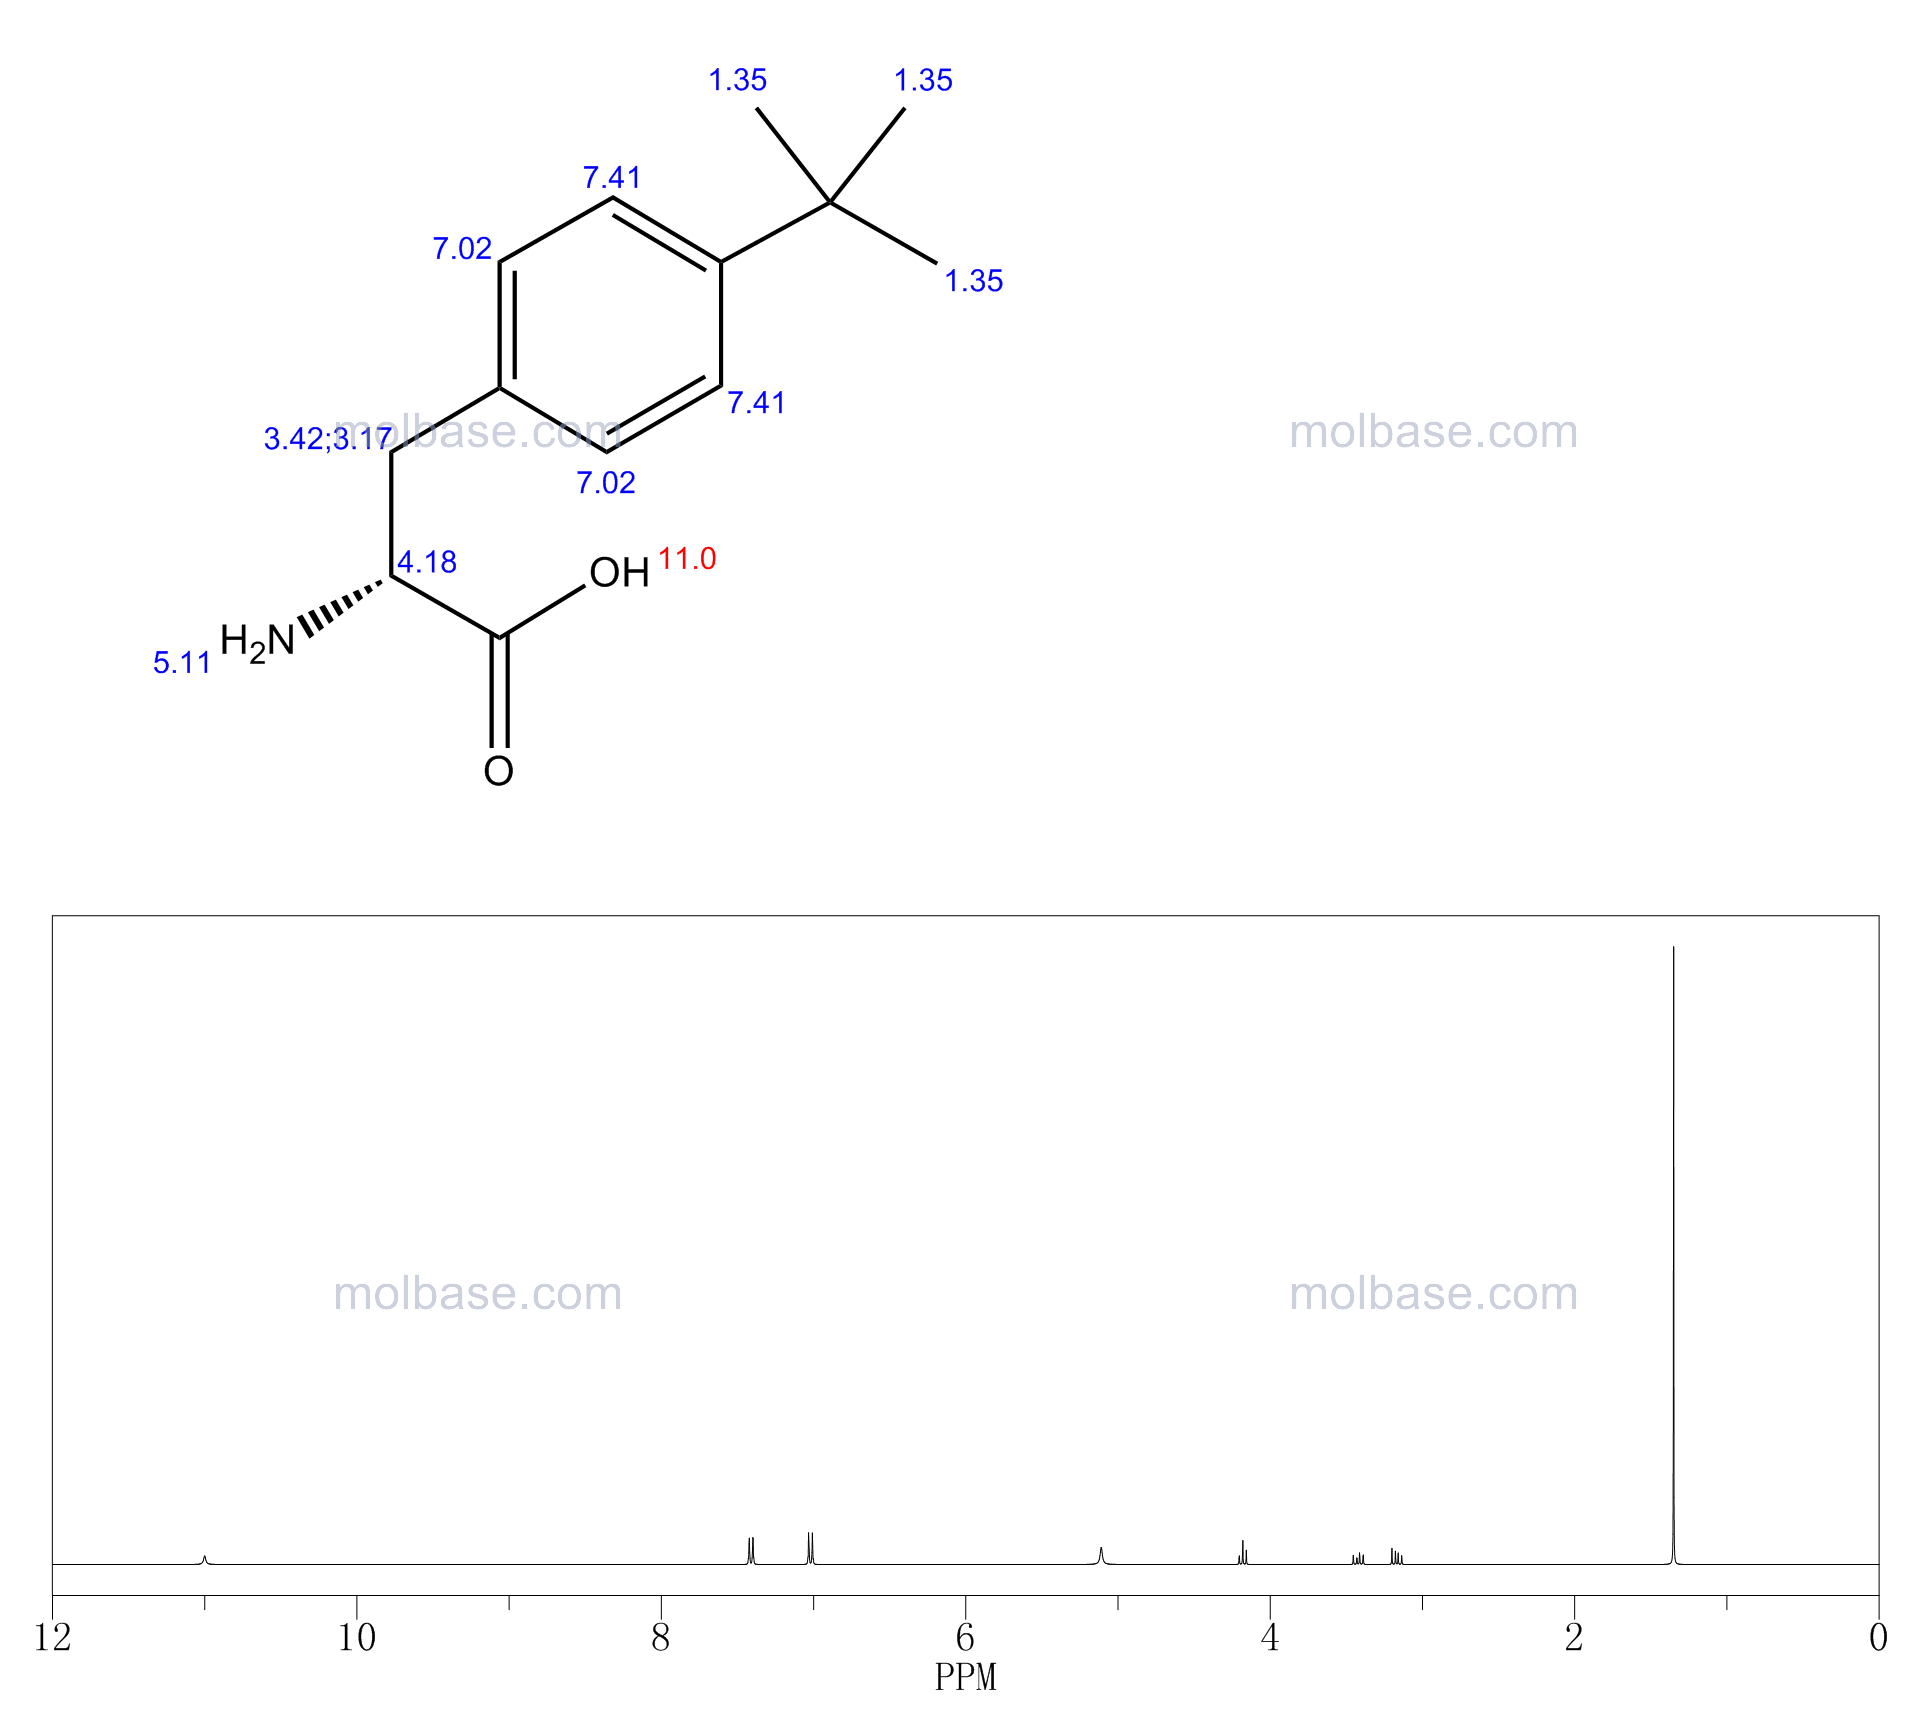 (2R)-2-amino-3-(4-tert-butylphenyl)propanoic acid NMR spectra analysis, Chemical CAS NO. 274262-82-7 NMR spectral analysis, (2R)-2-amino-3-(4-tert-butylphenyl)propanoic acid C-NMR spectrum